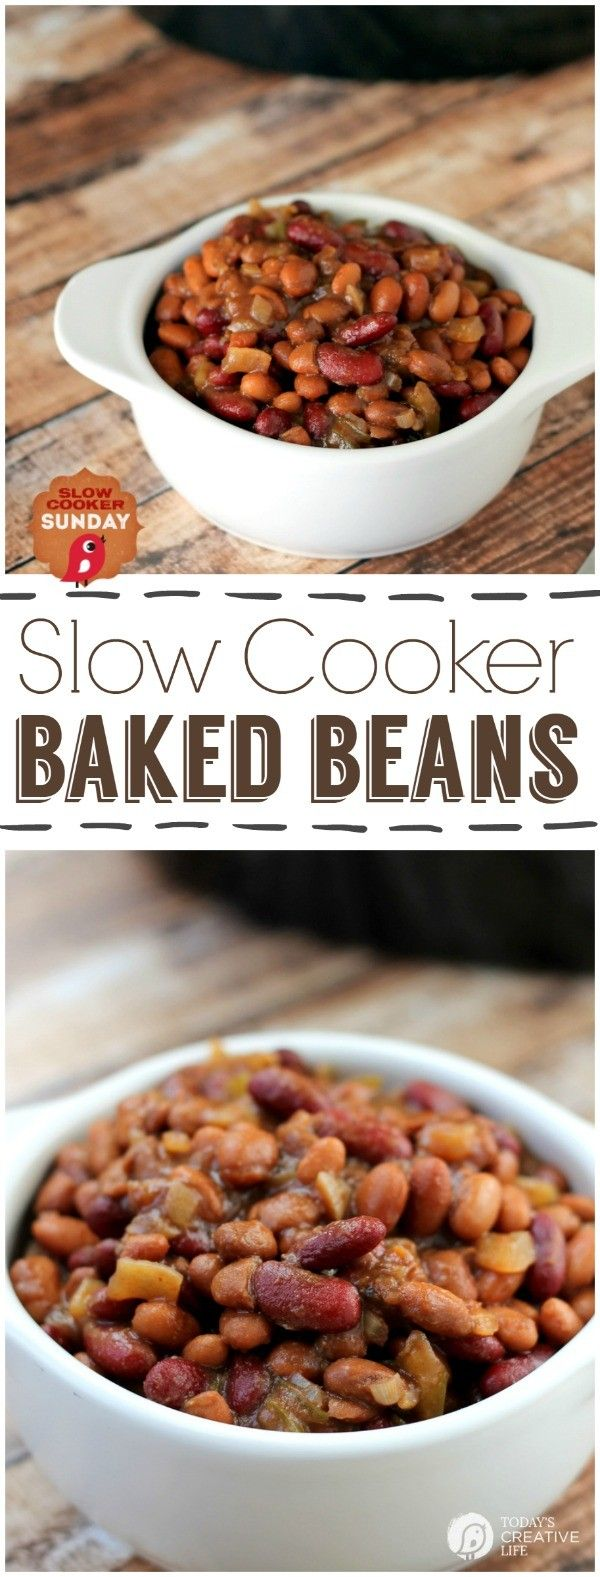 Slow Cooker Baked Beans | Recipe | Sunday recipes, Stove and Outdoor ...